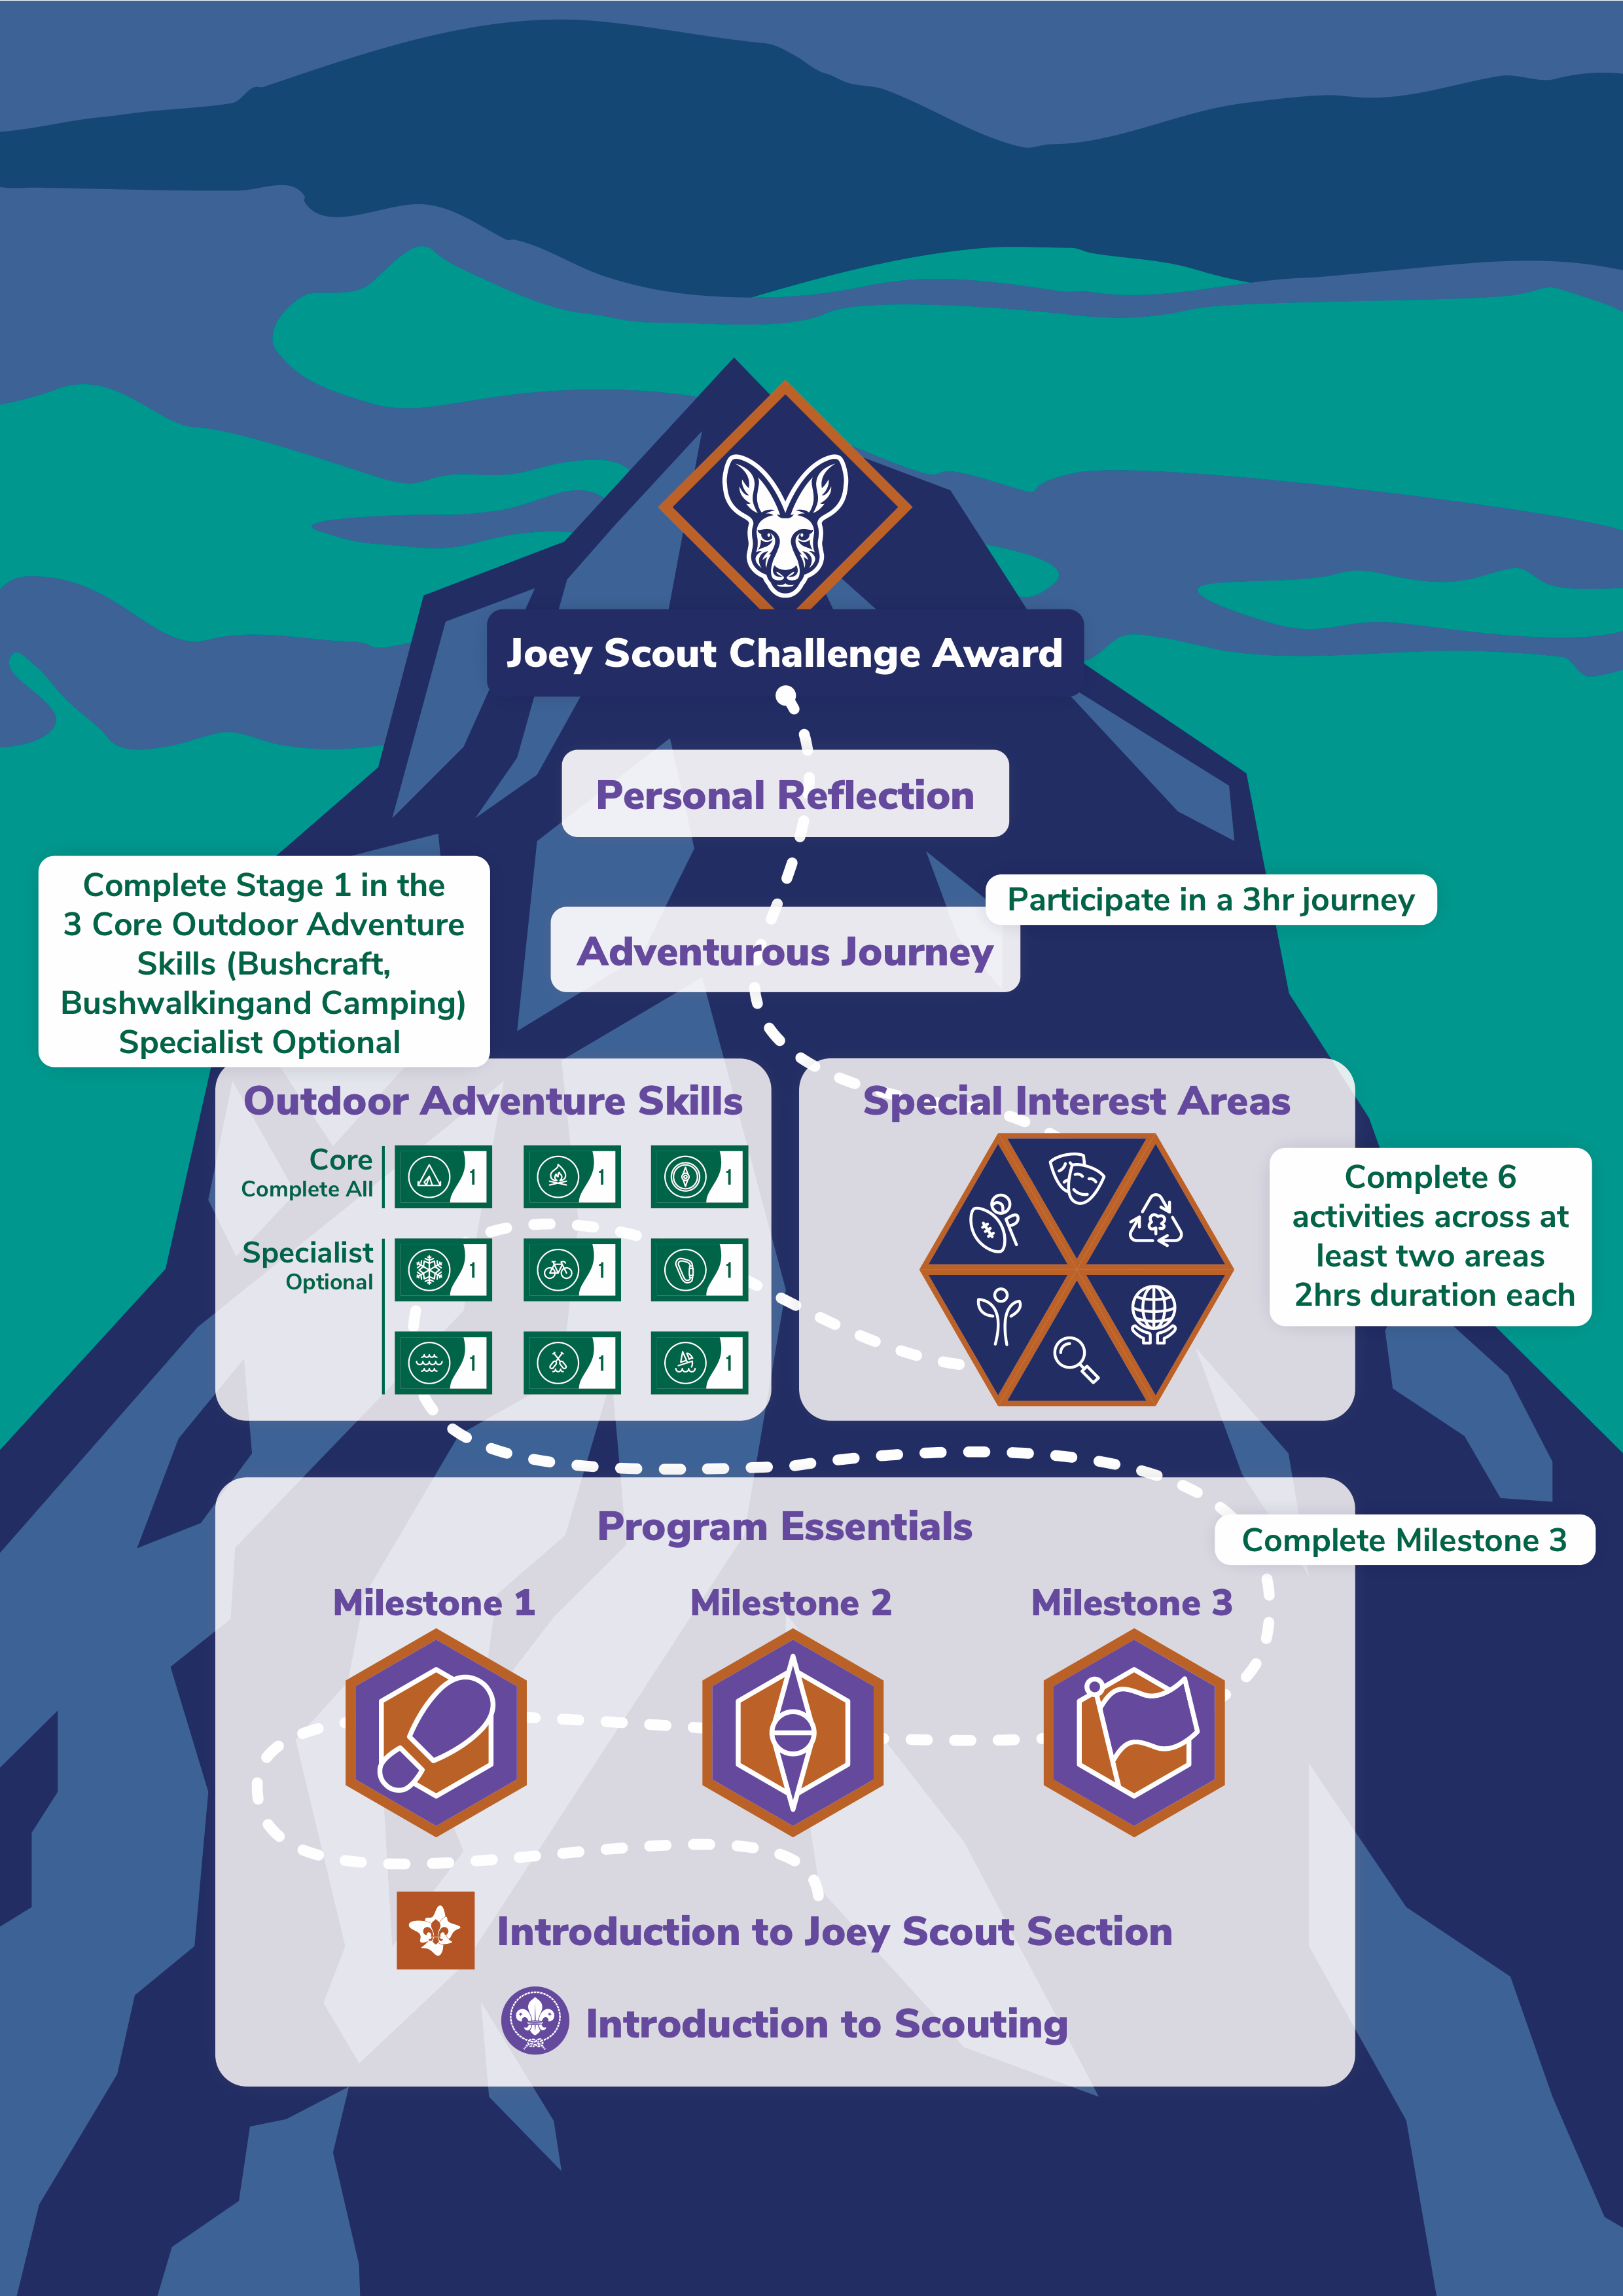 Joey Scout Challenge Award